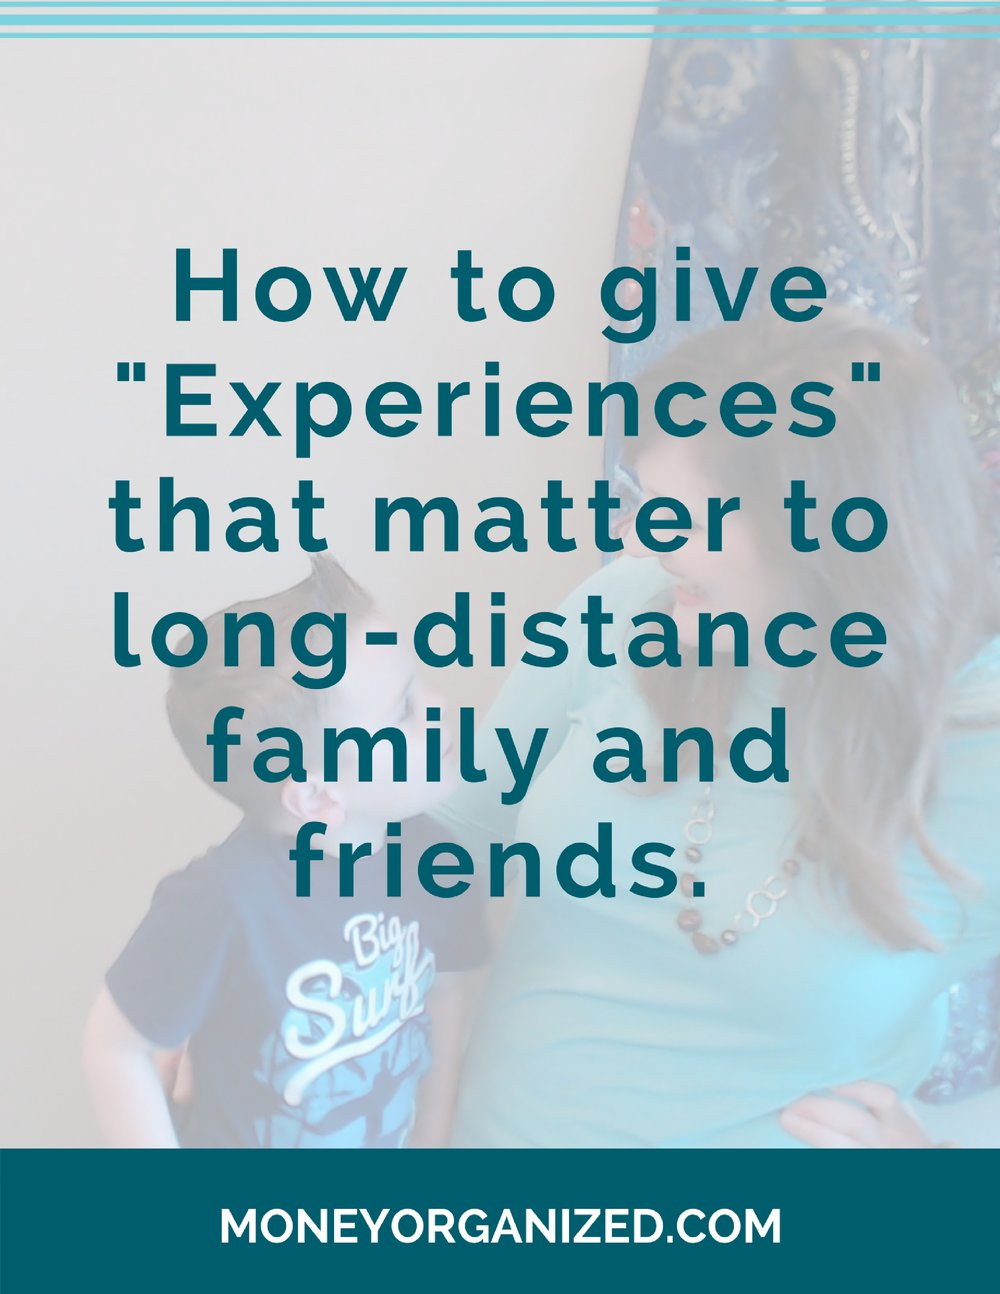 When your loved ones live far away and you want to gift them something to show you're thinking about them. But you don't really want to add to the number of things they have to maintain, dust, clean, or move. What do you do? Focus on giving them an Experience.